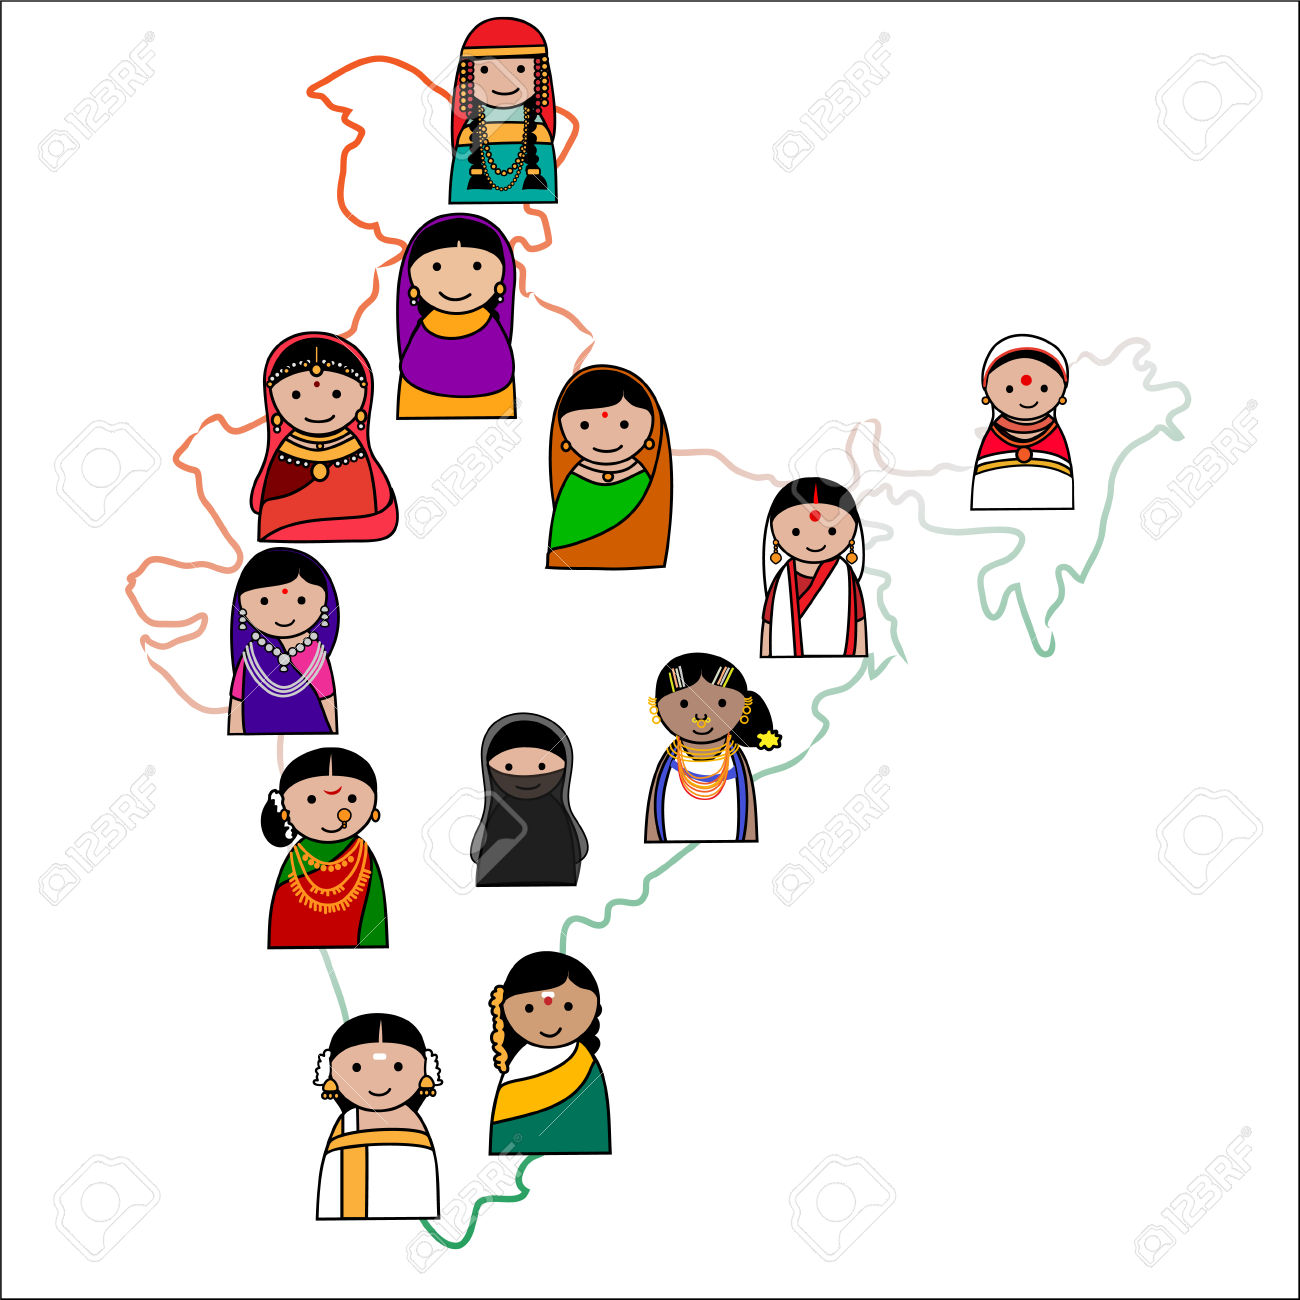 Indian traditional dresses of different states clipart picture black and white library Indian Traditional Dresses Of Different States Clipart - raveitsafe picture black and white library